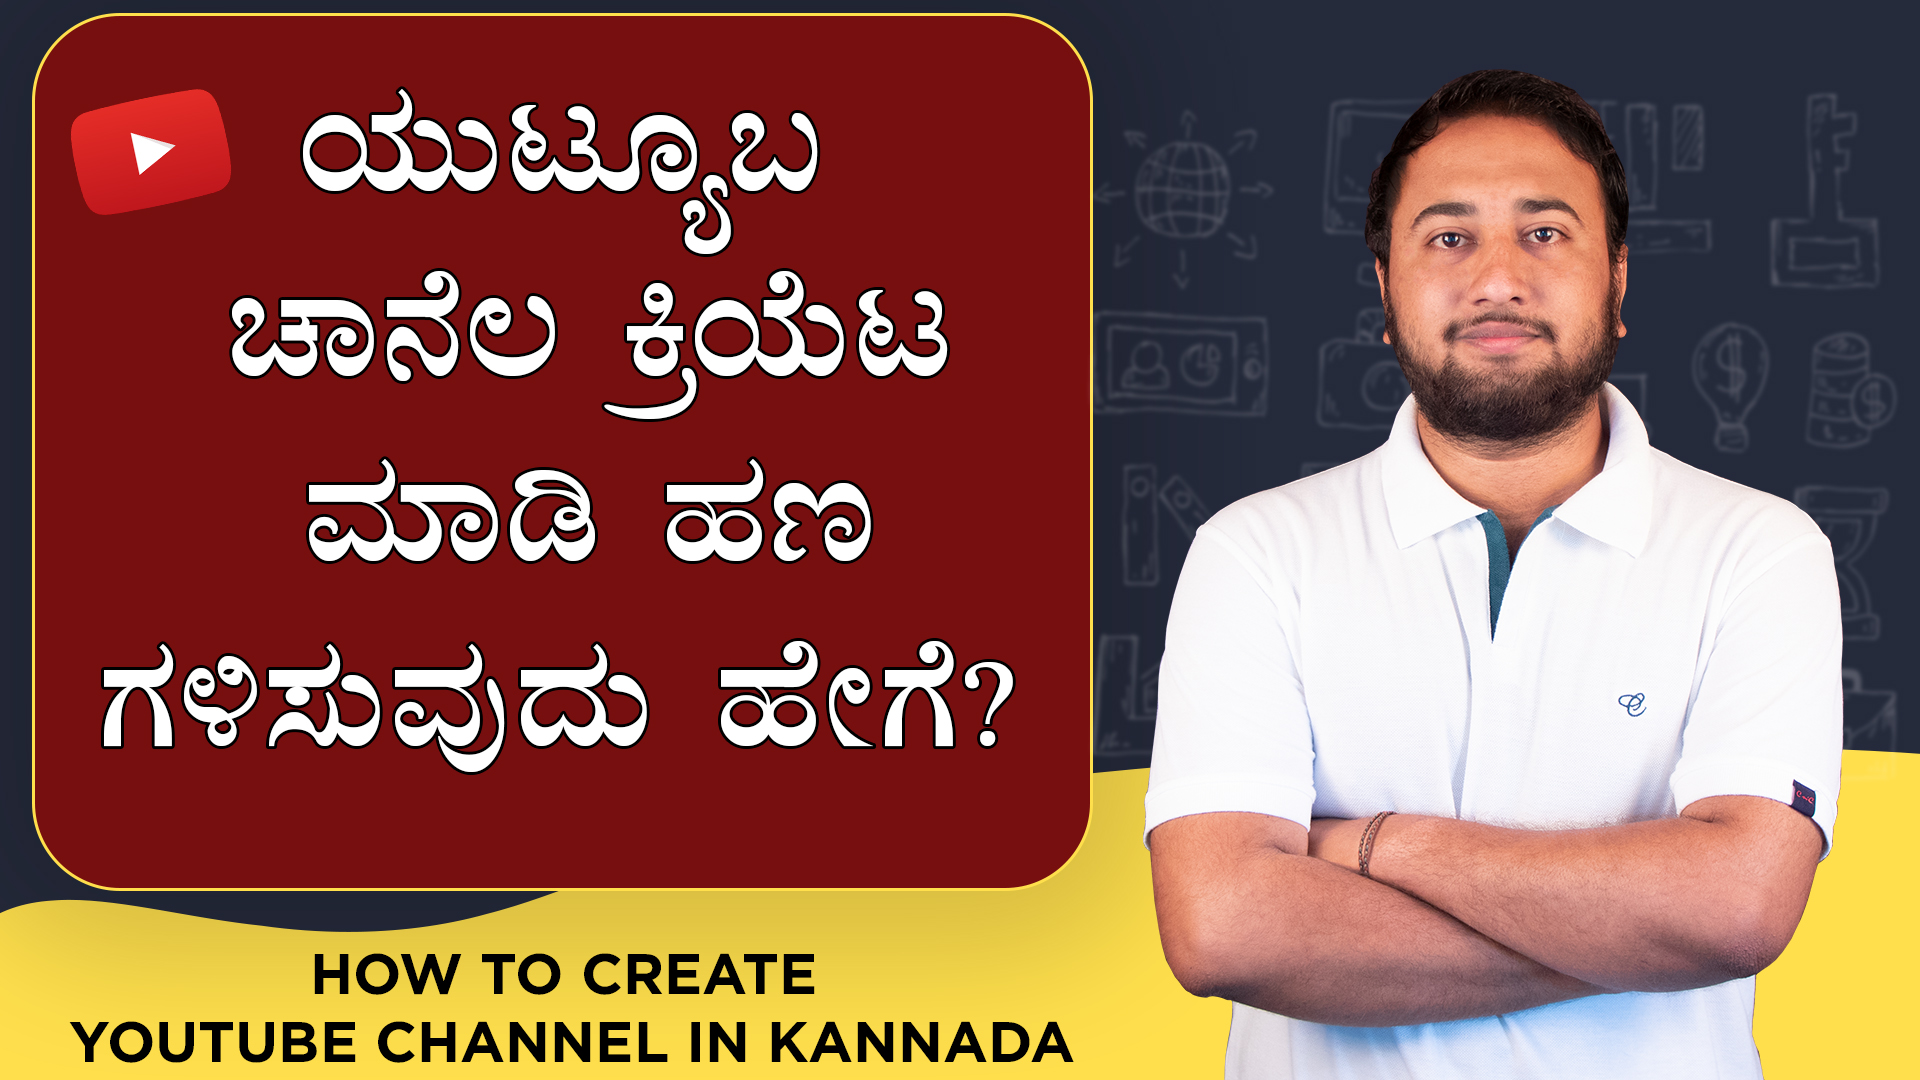 How to Create YouTube Channel in Kannada